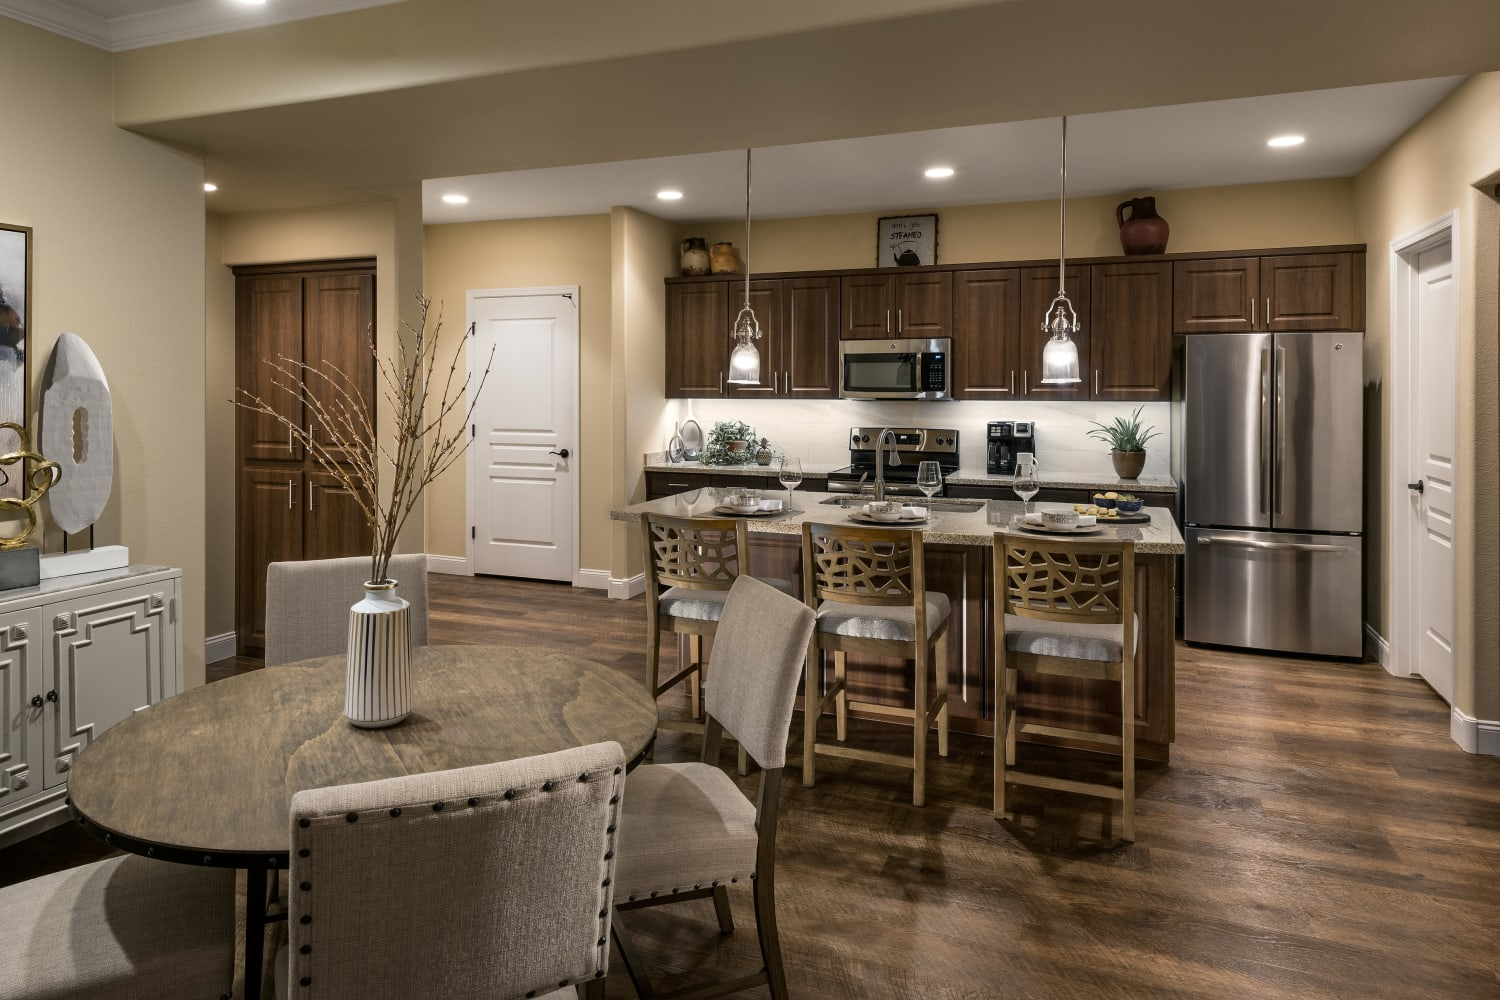 Two Bedroom Kitchen San Valencia in Chandler, Arizona